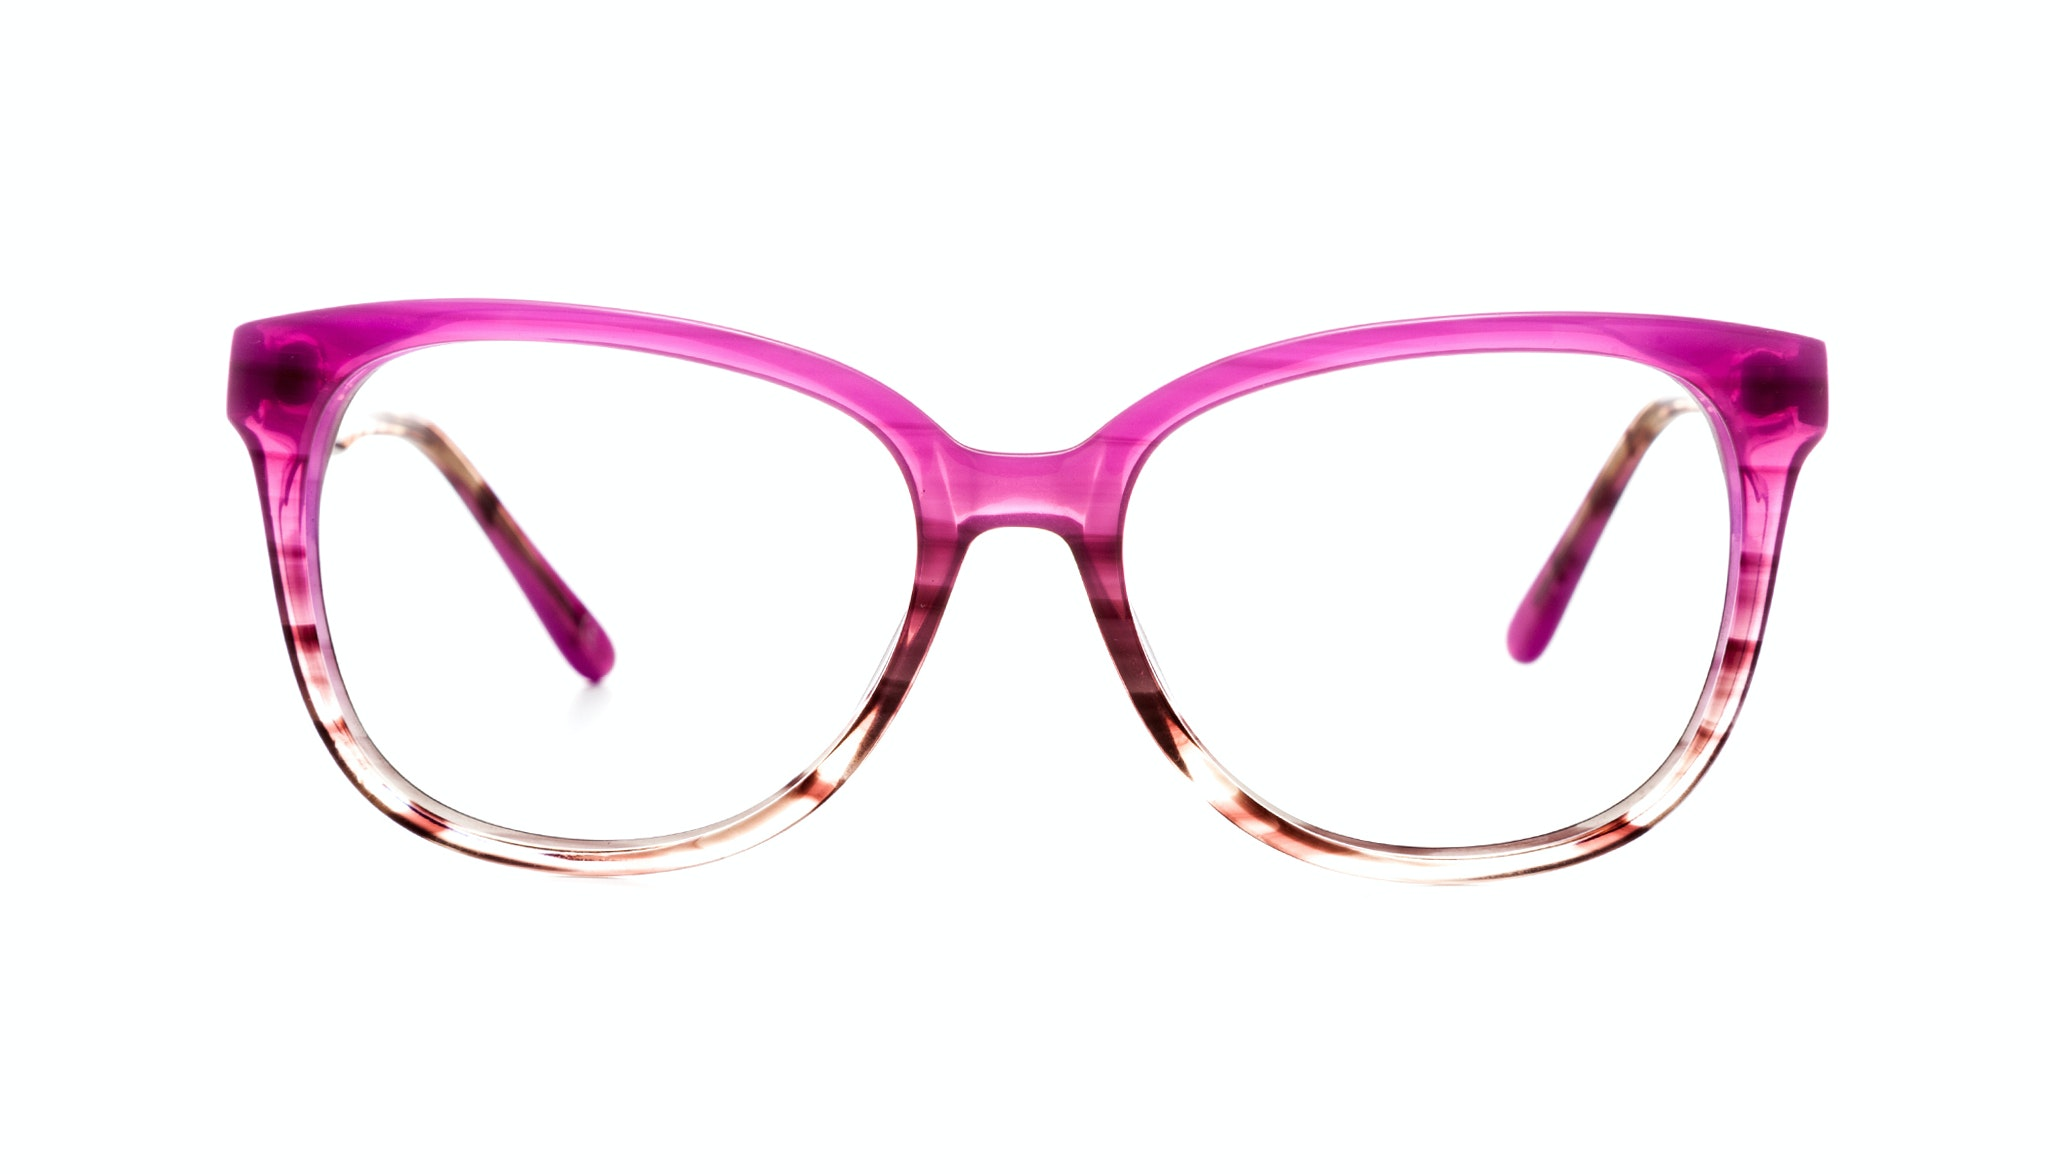 Affordable Fashion Glasses Round Eyeglasses Women Fancy-Pants Cosmo Pink Front